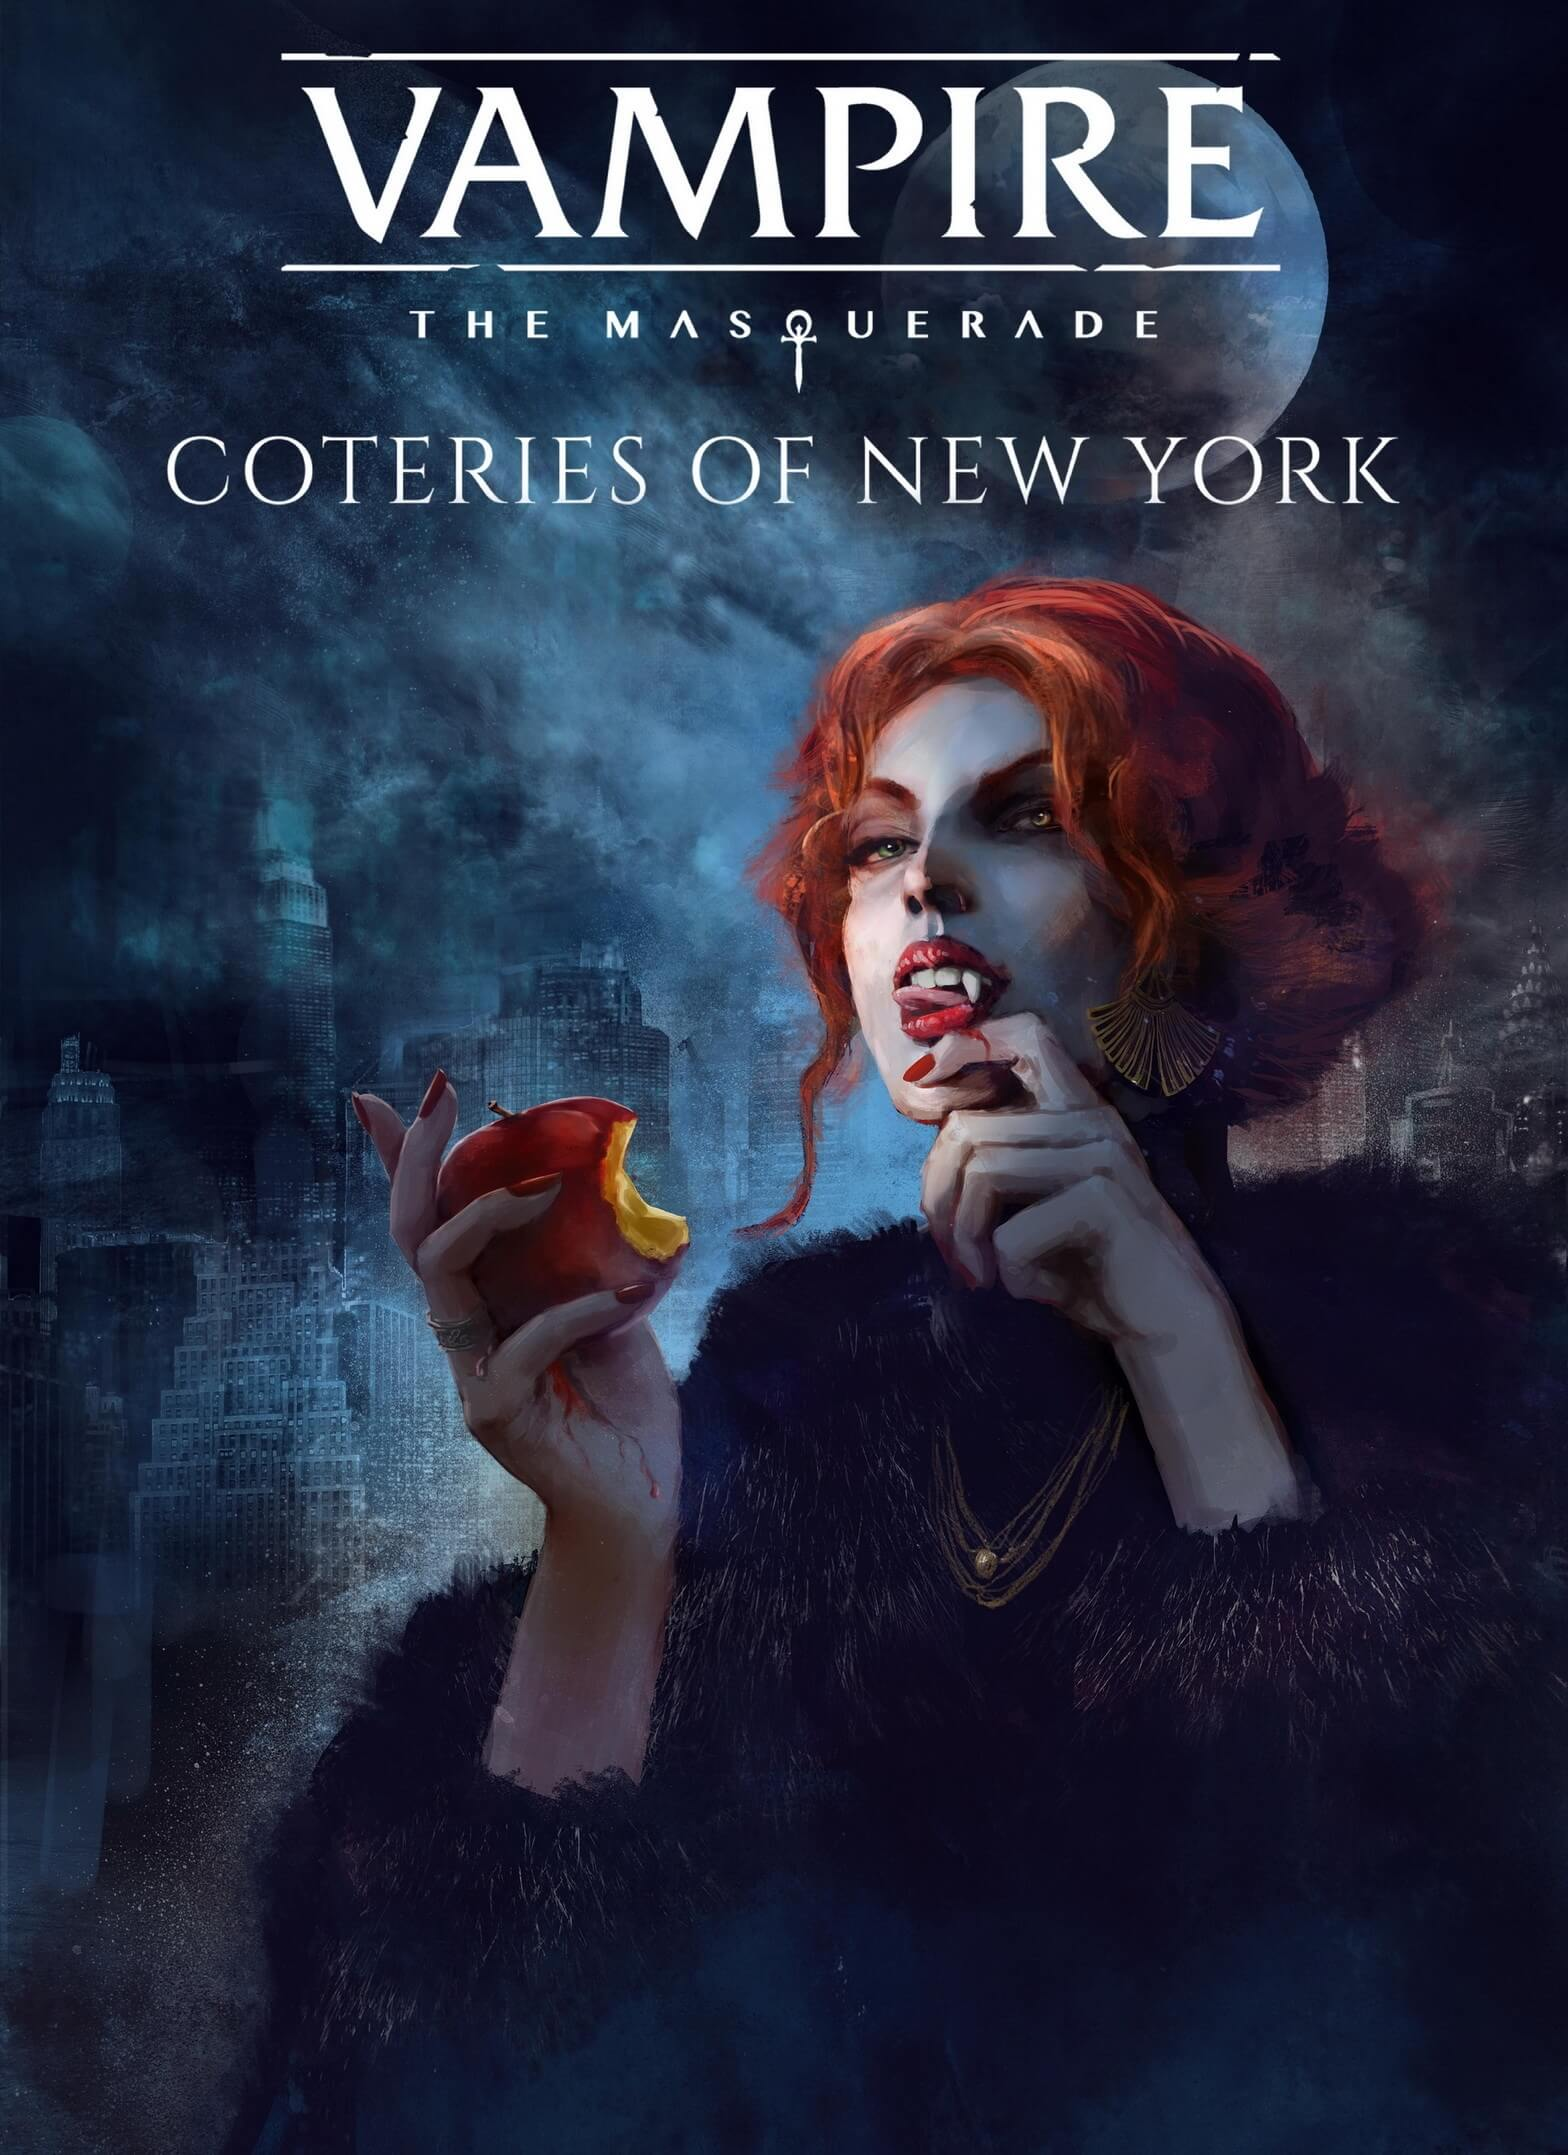 Vampire: The Masquerade - Coteries of New York | ROW (728082e3-70c0-4a2d-aeb9-d39525c76473)